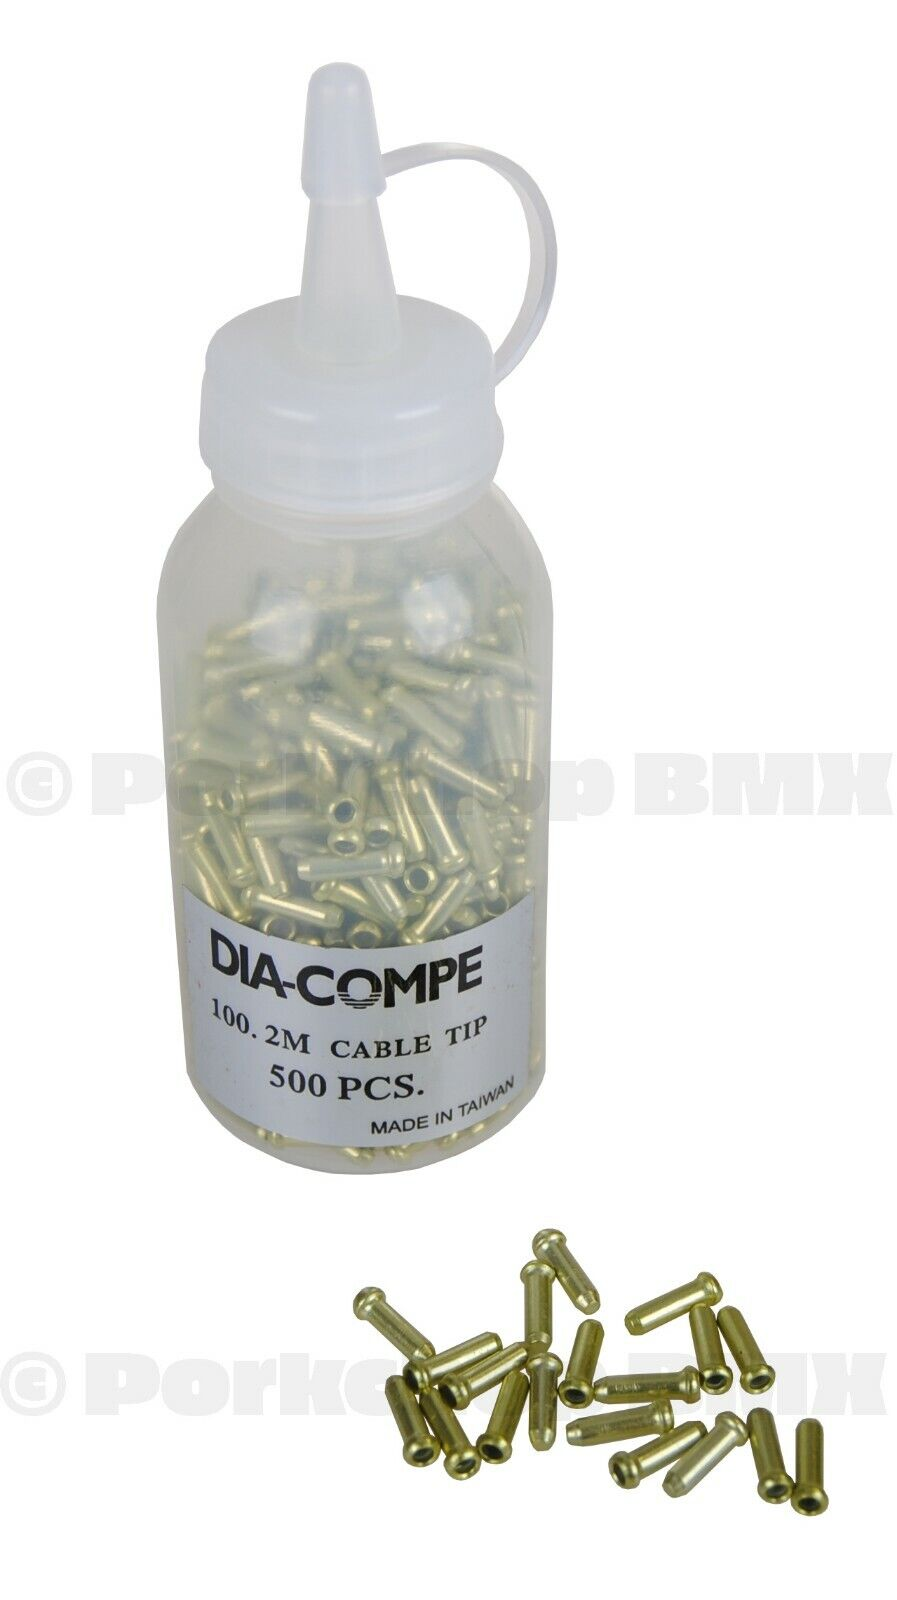 Dia-Compe bicycle brake cable end crimps tips GREEN ANODIZED BOTTLE OF 500